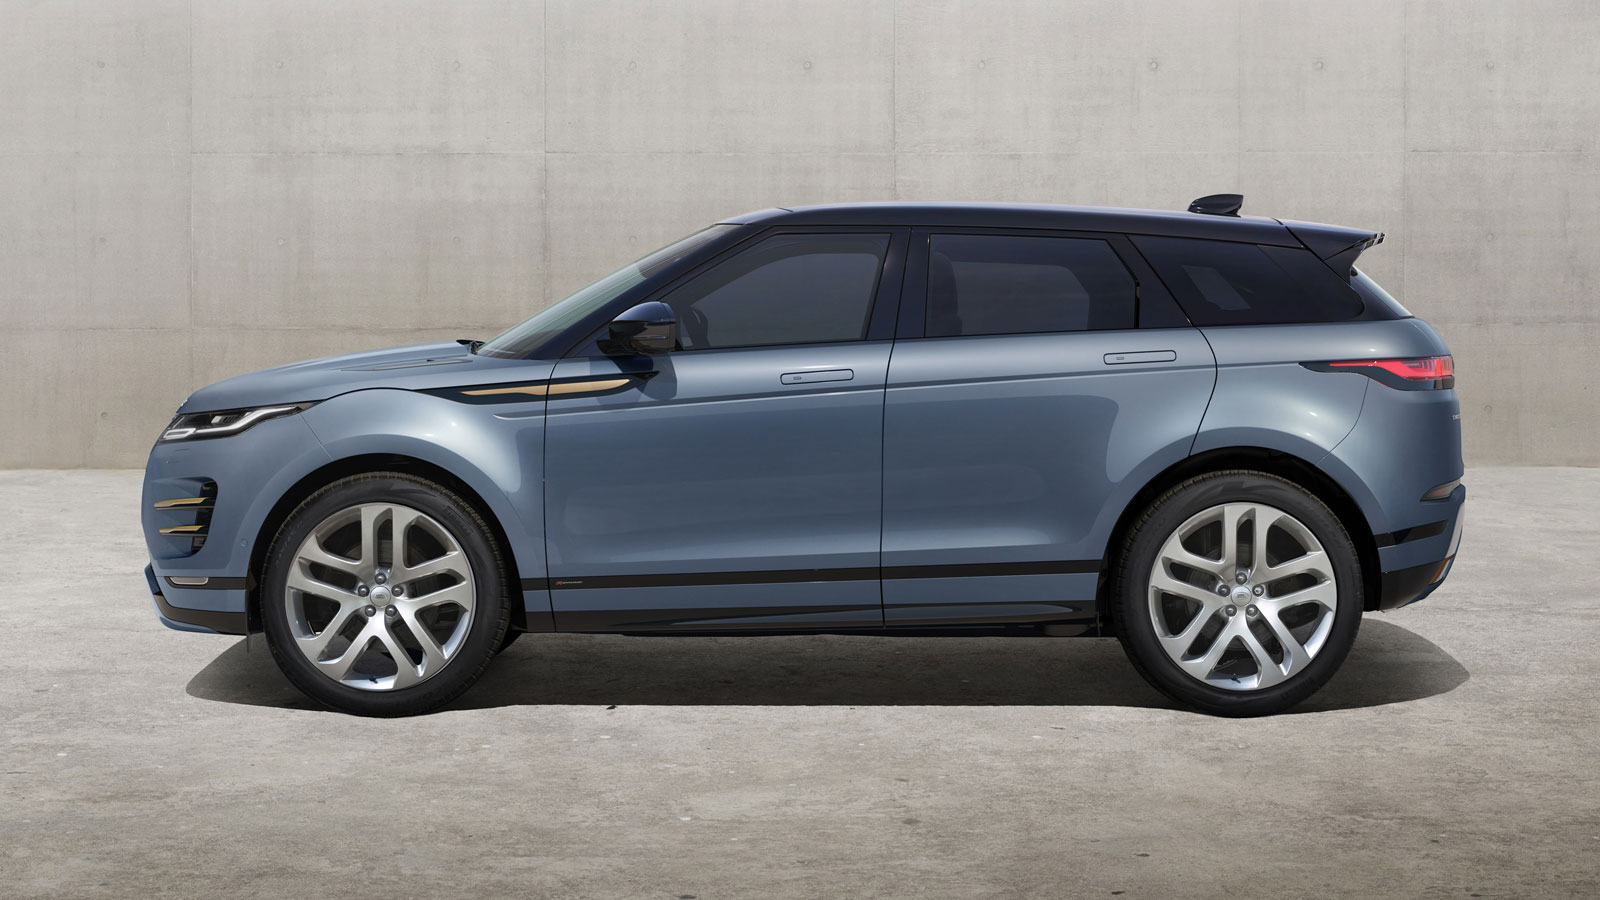 New Range Rover Evoque Exterior Design